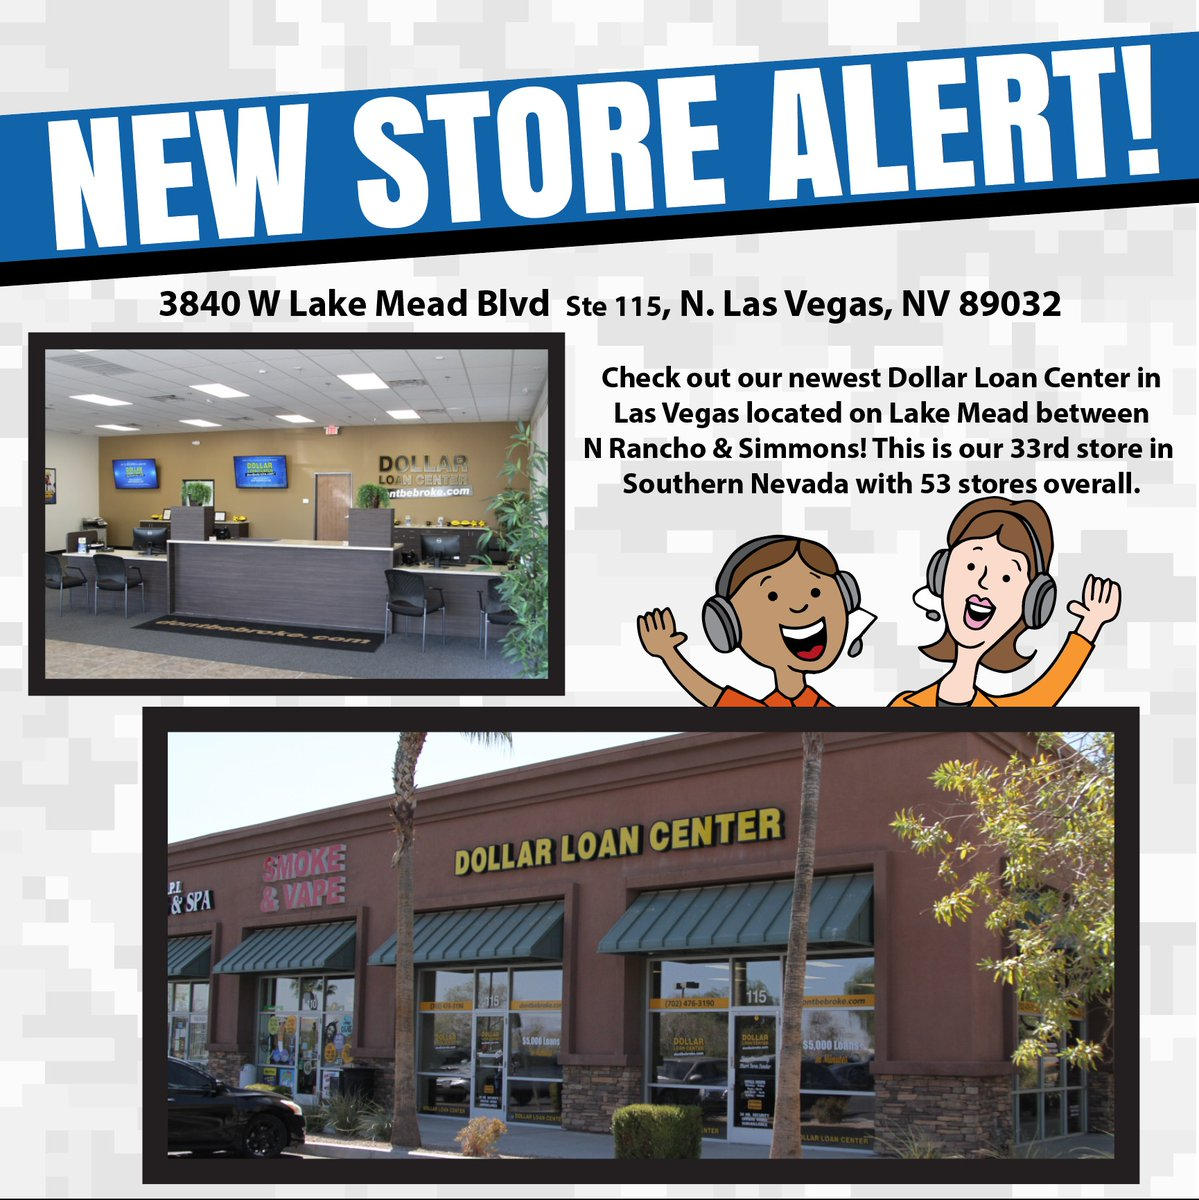 Check out our newest Dollar Loan Center in Las Vegas located on Lake Mead between N Rancho & Simmons! This is our 33rd store in Southern Nevada with 53 stores overall. https://t.co/mbvTSDXBFp